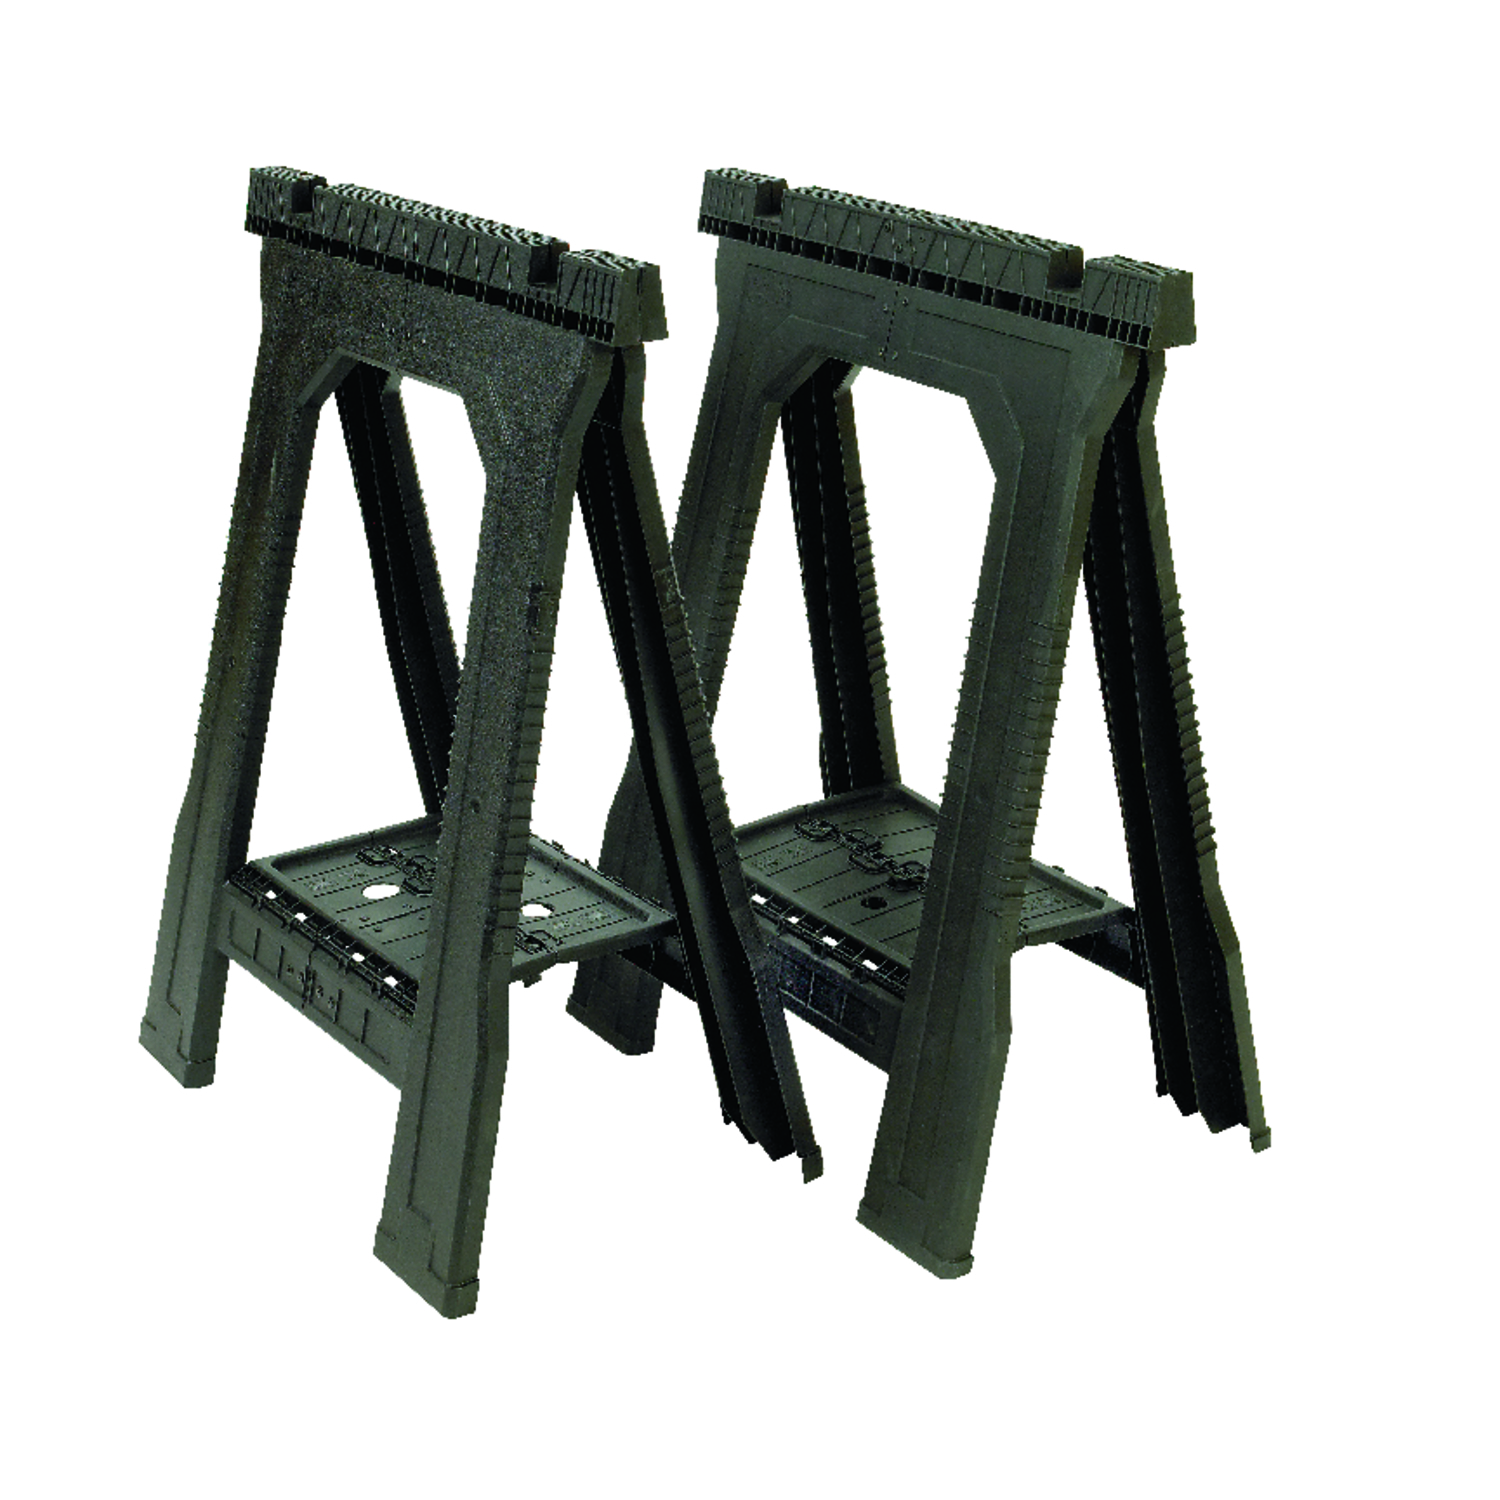 Stanley Folding Sawhorse Plastic 32 In H Ace Hardware